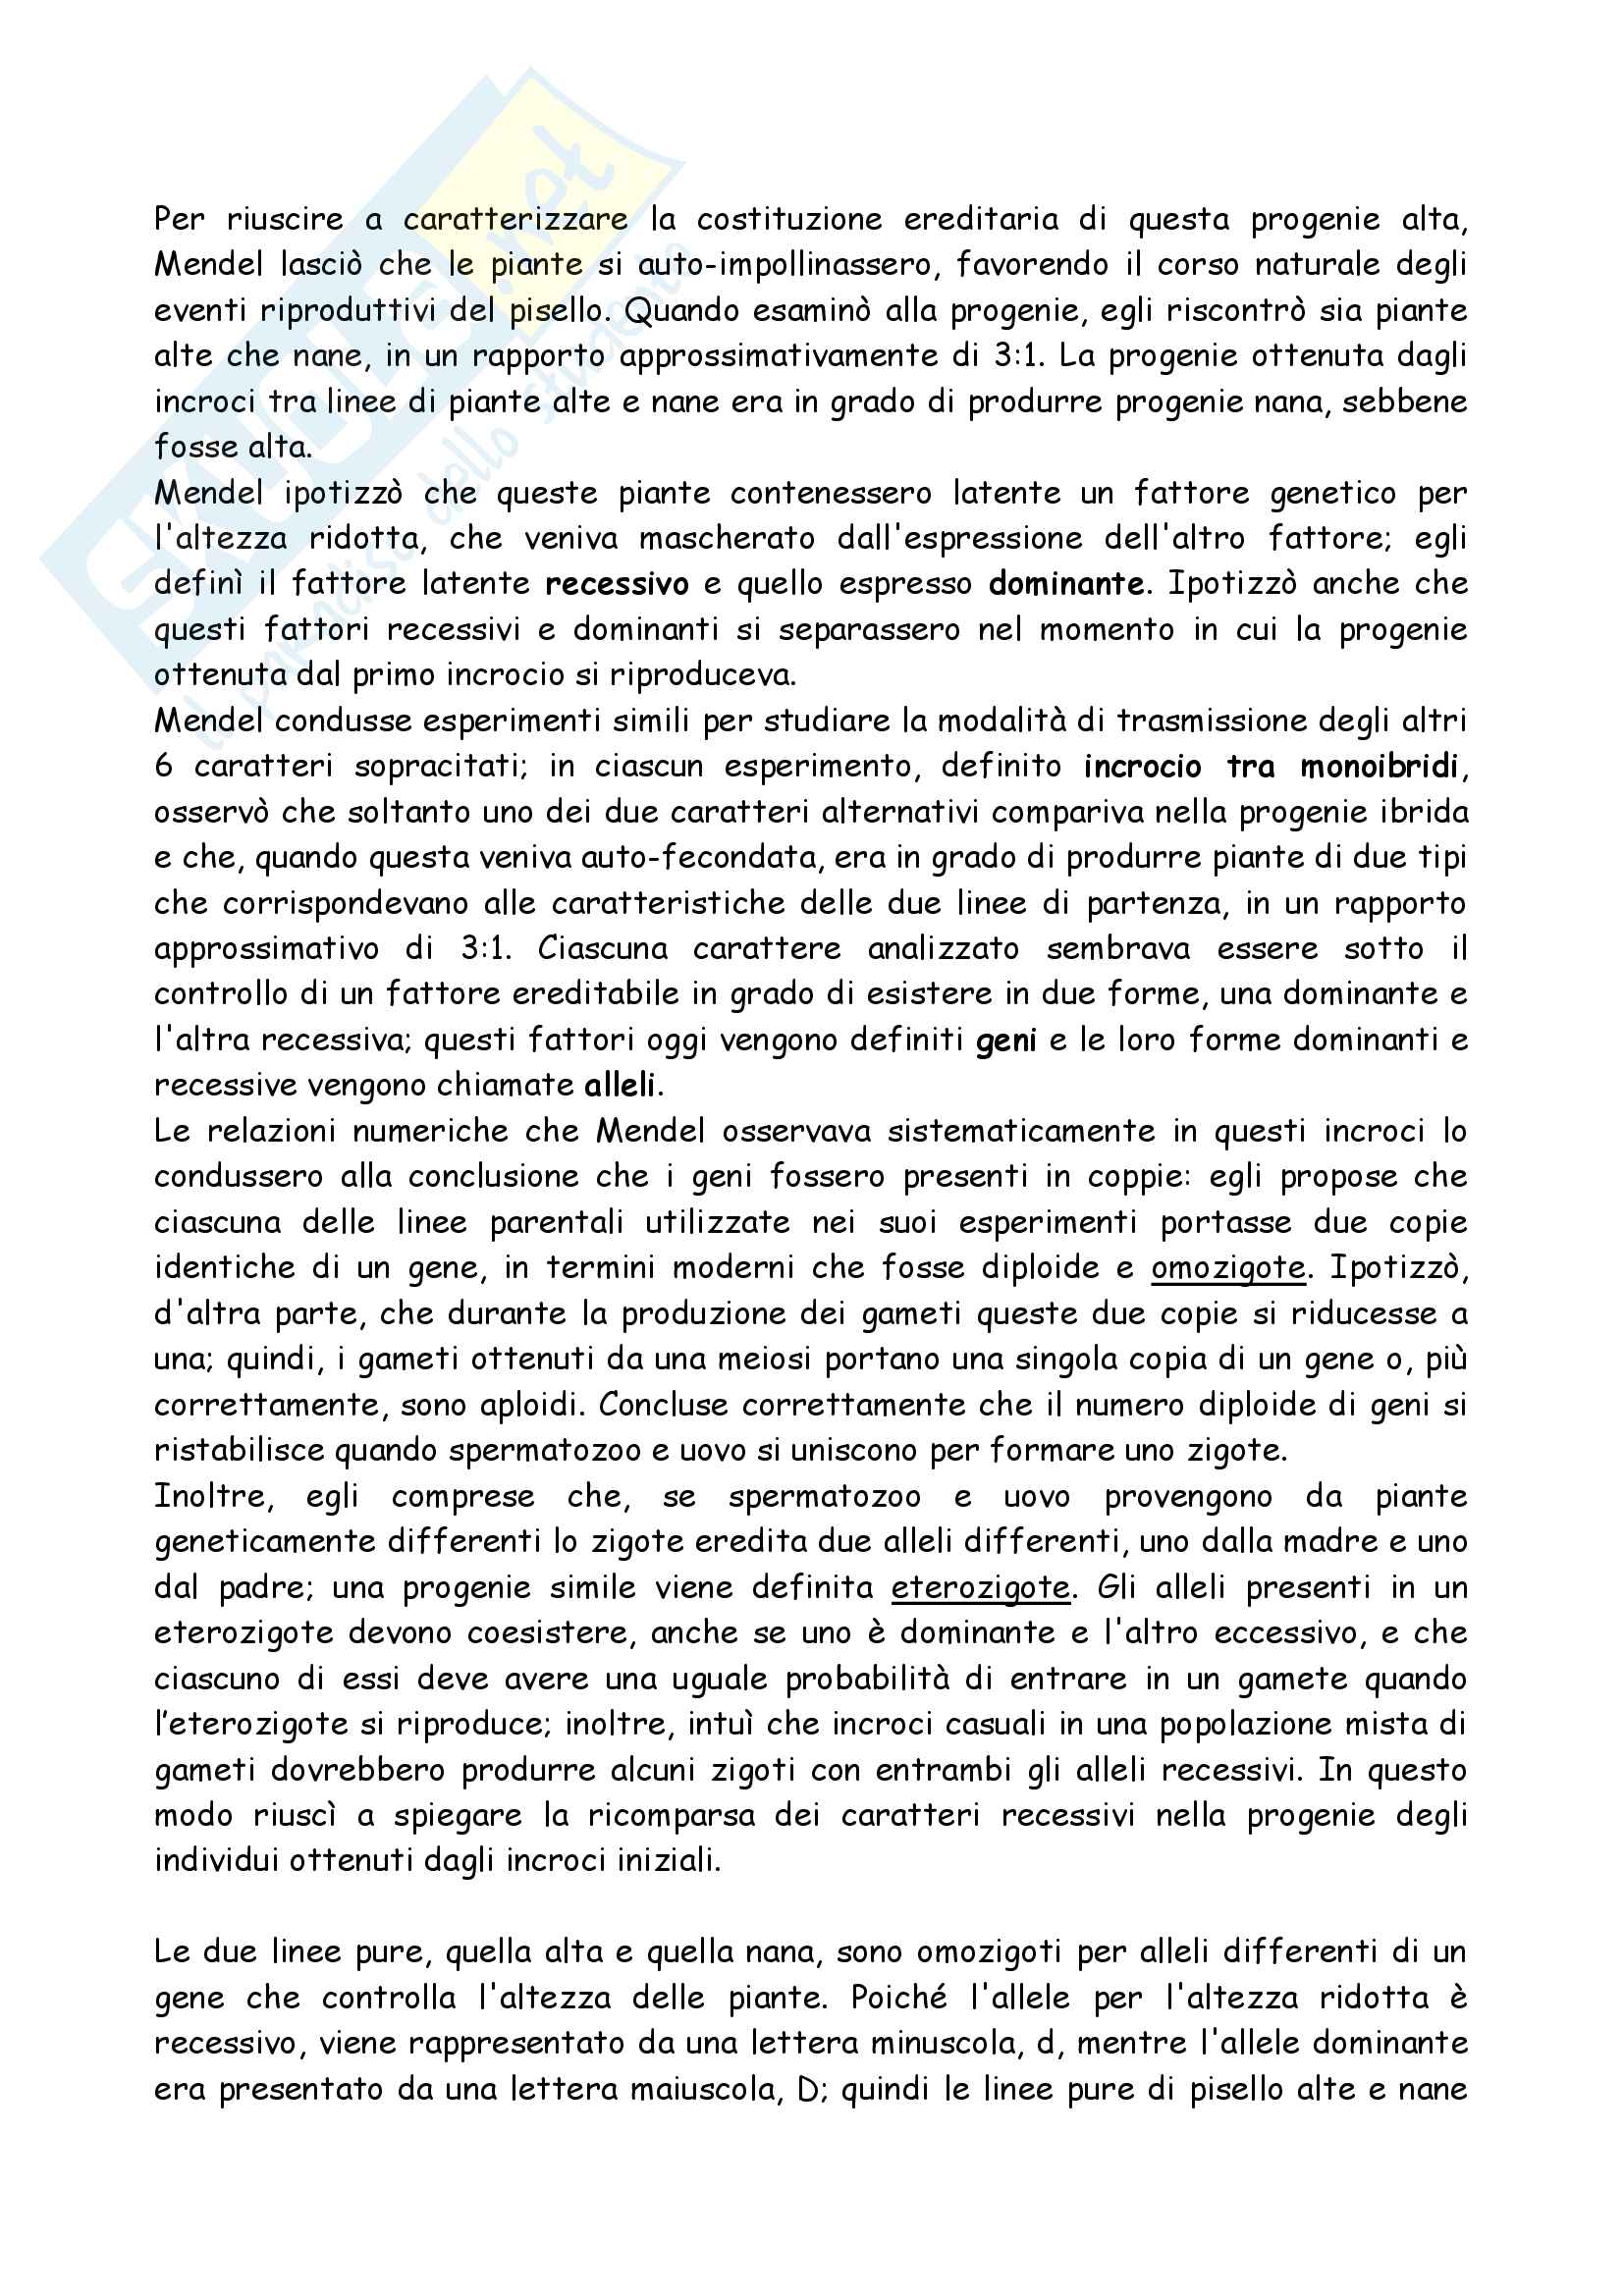 Totale Genetica Pag. 2